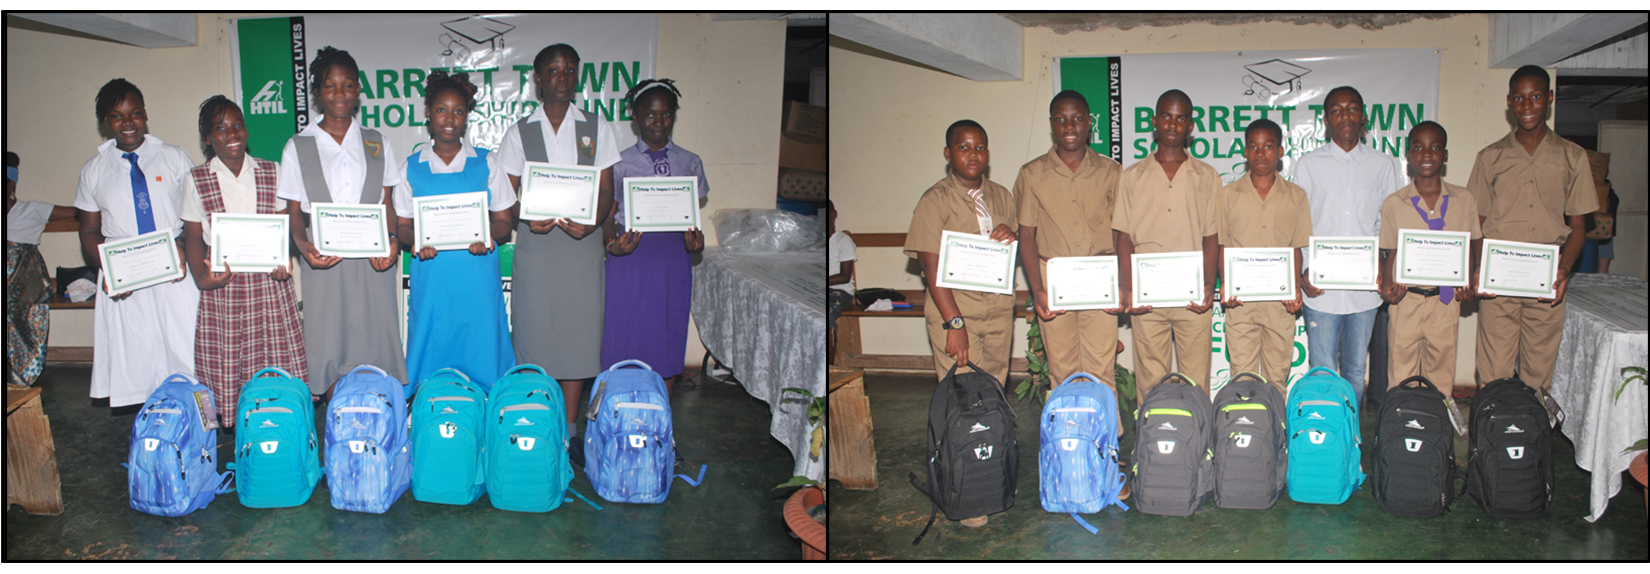 Students with the certificate and gifts